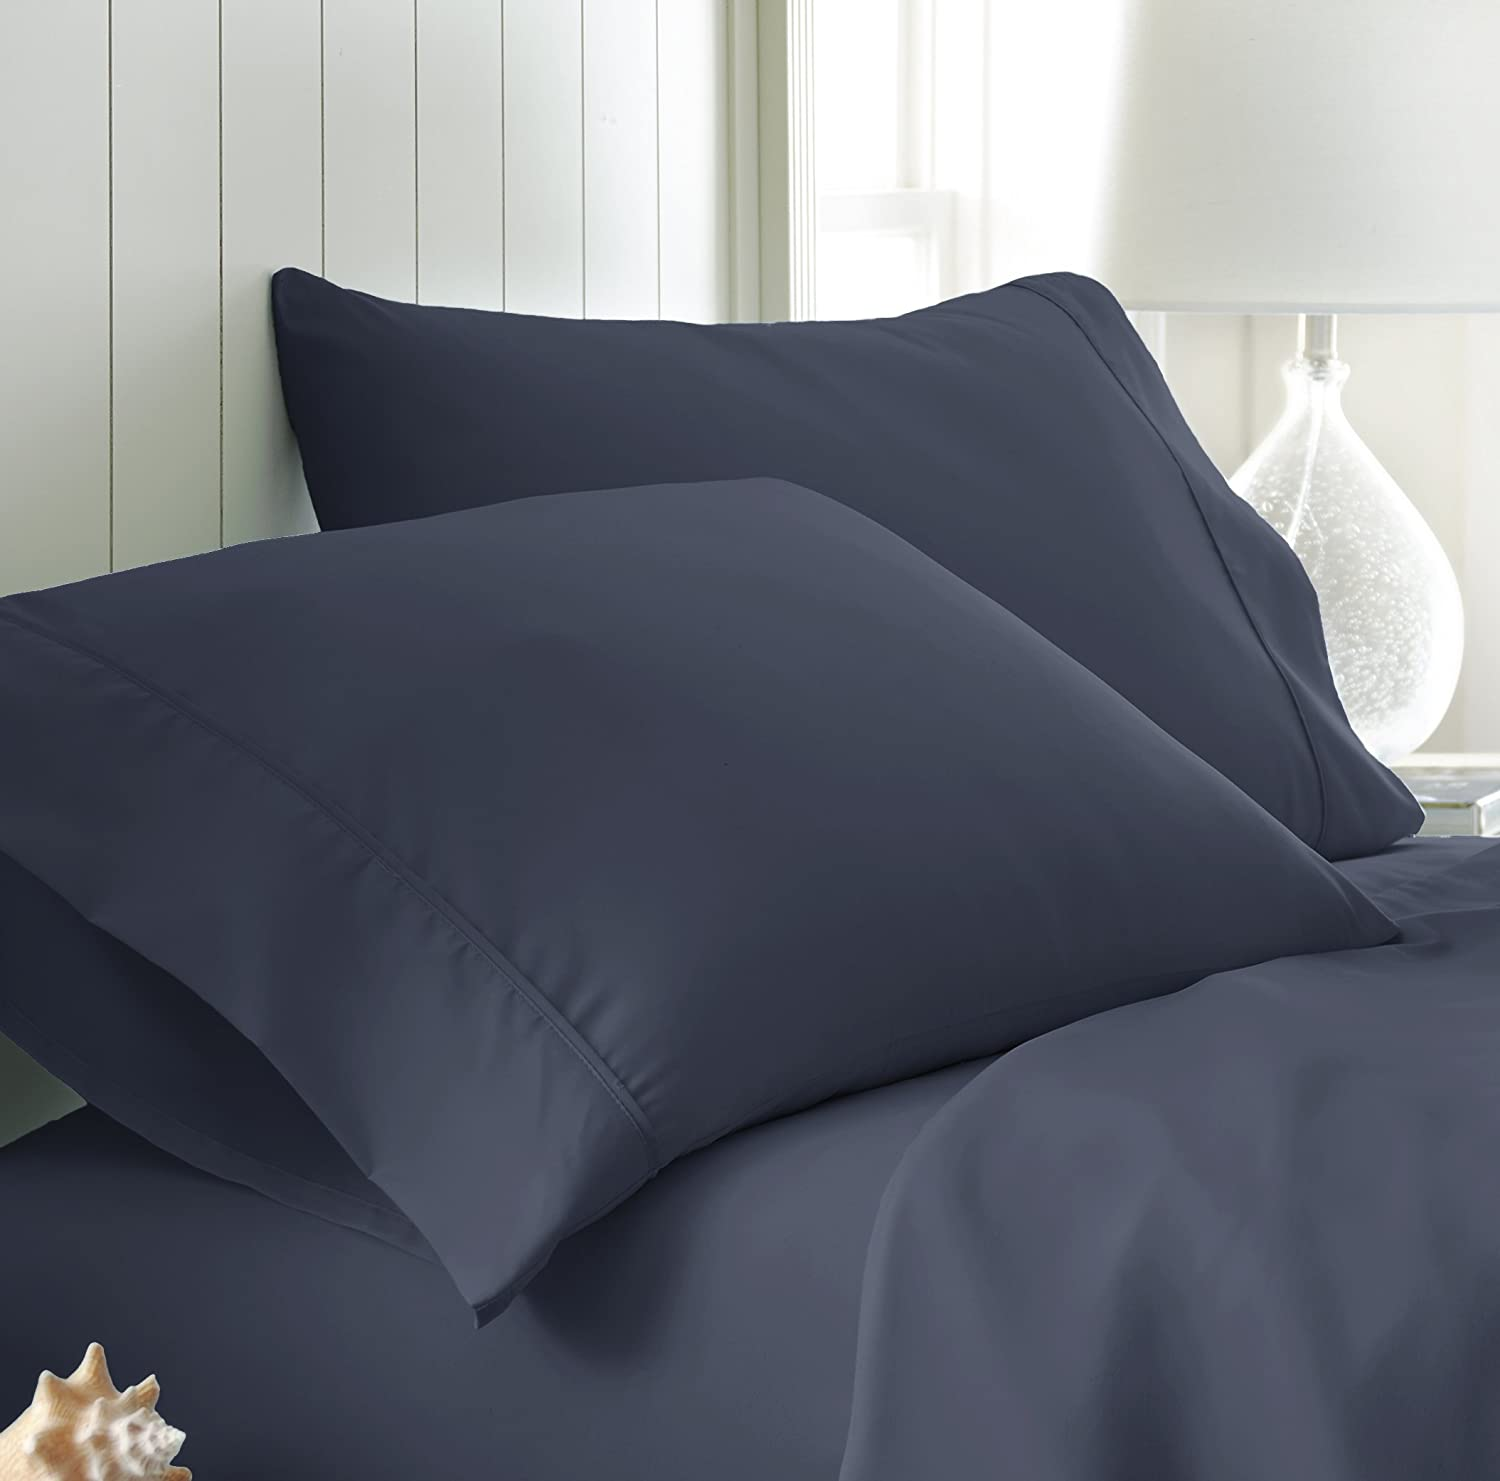 ienjoy Home IEH-PILLOWCASE-STD-NAVY 2Piece Home Collection Premium Luxury Double Brushed Pillow Case Set, Standard, Navy